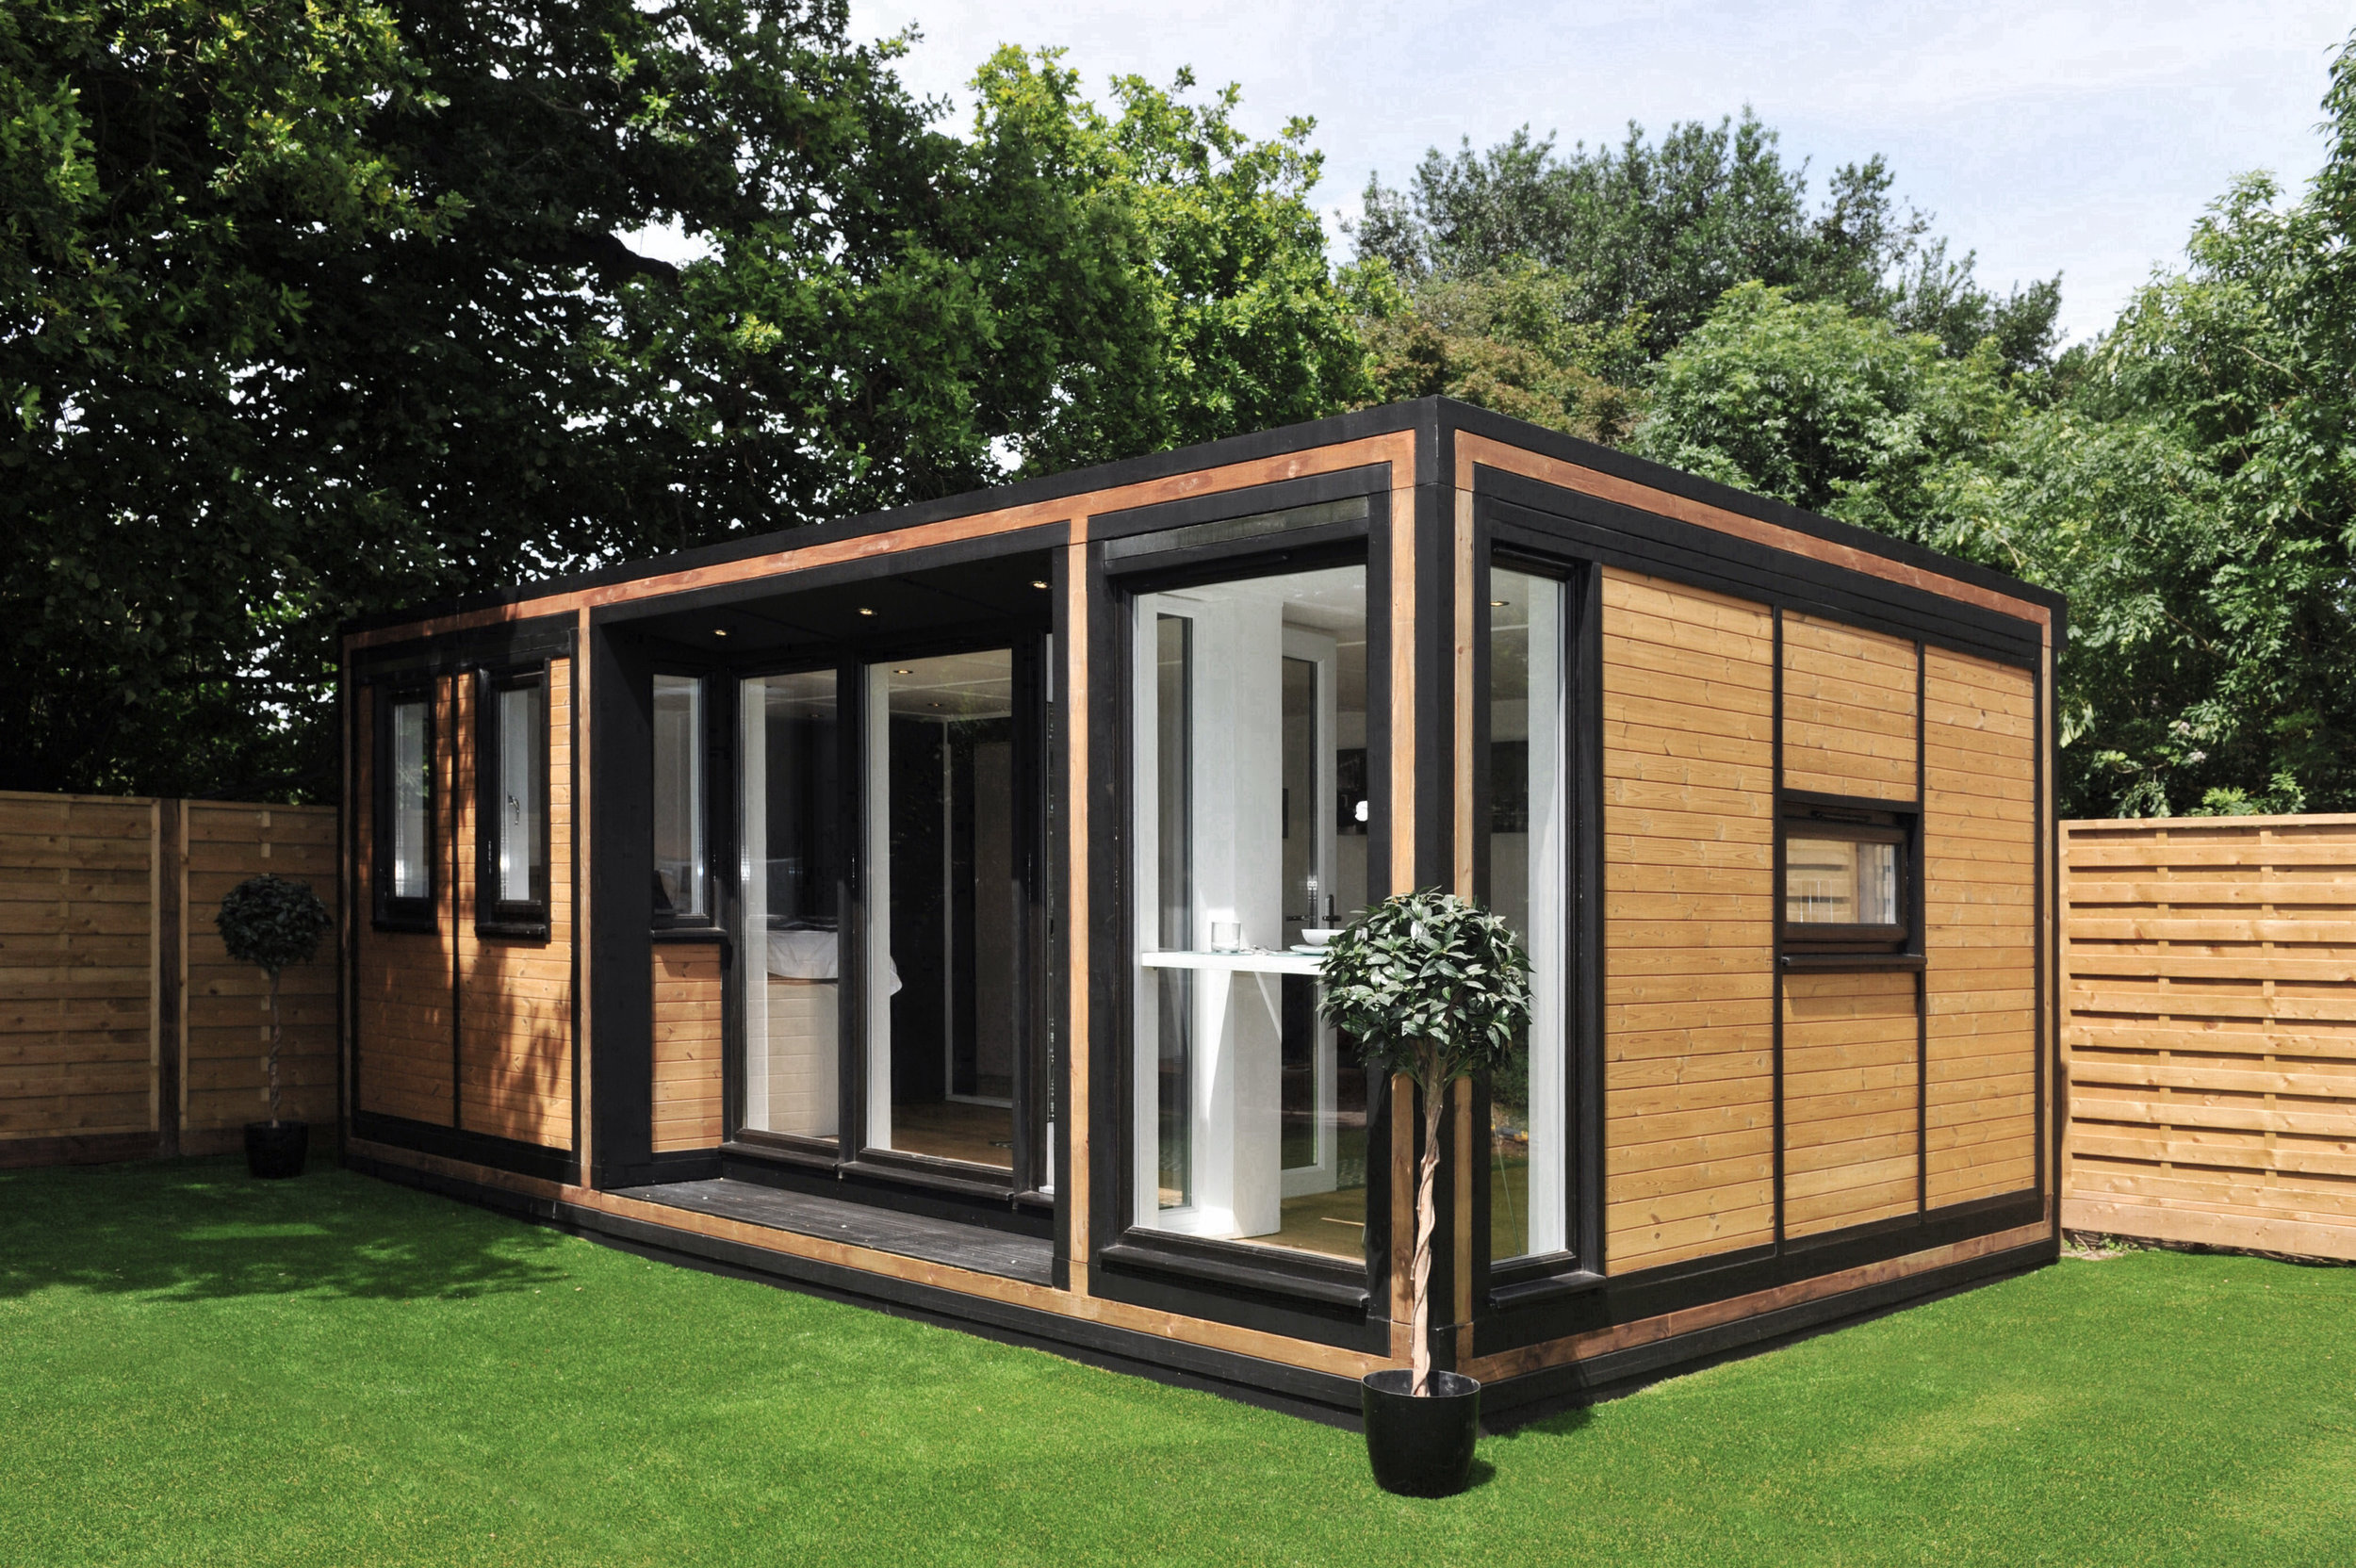 ZEDBOX 635  (6 x 3.5)  Internal Size: 6401 x 3791  External Size: 6871 x 4261  Bed Options: Single or Double  Kitchen Options:Micro or Premier  Wet Room Options: Yes  Portico: Yes  Price:  £30,000    Optional Extras    Request Zedbox Catalogue